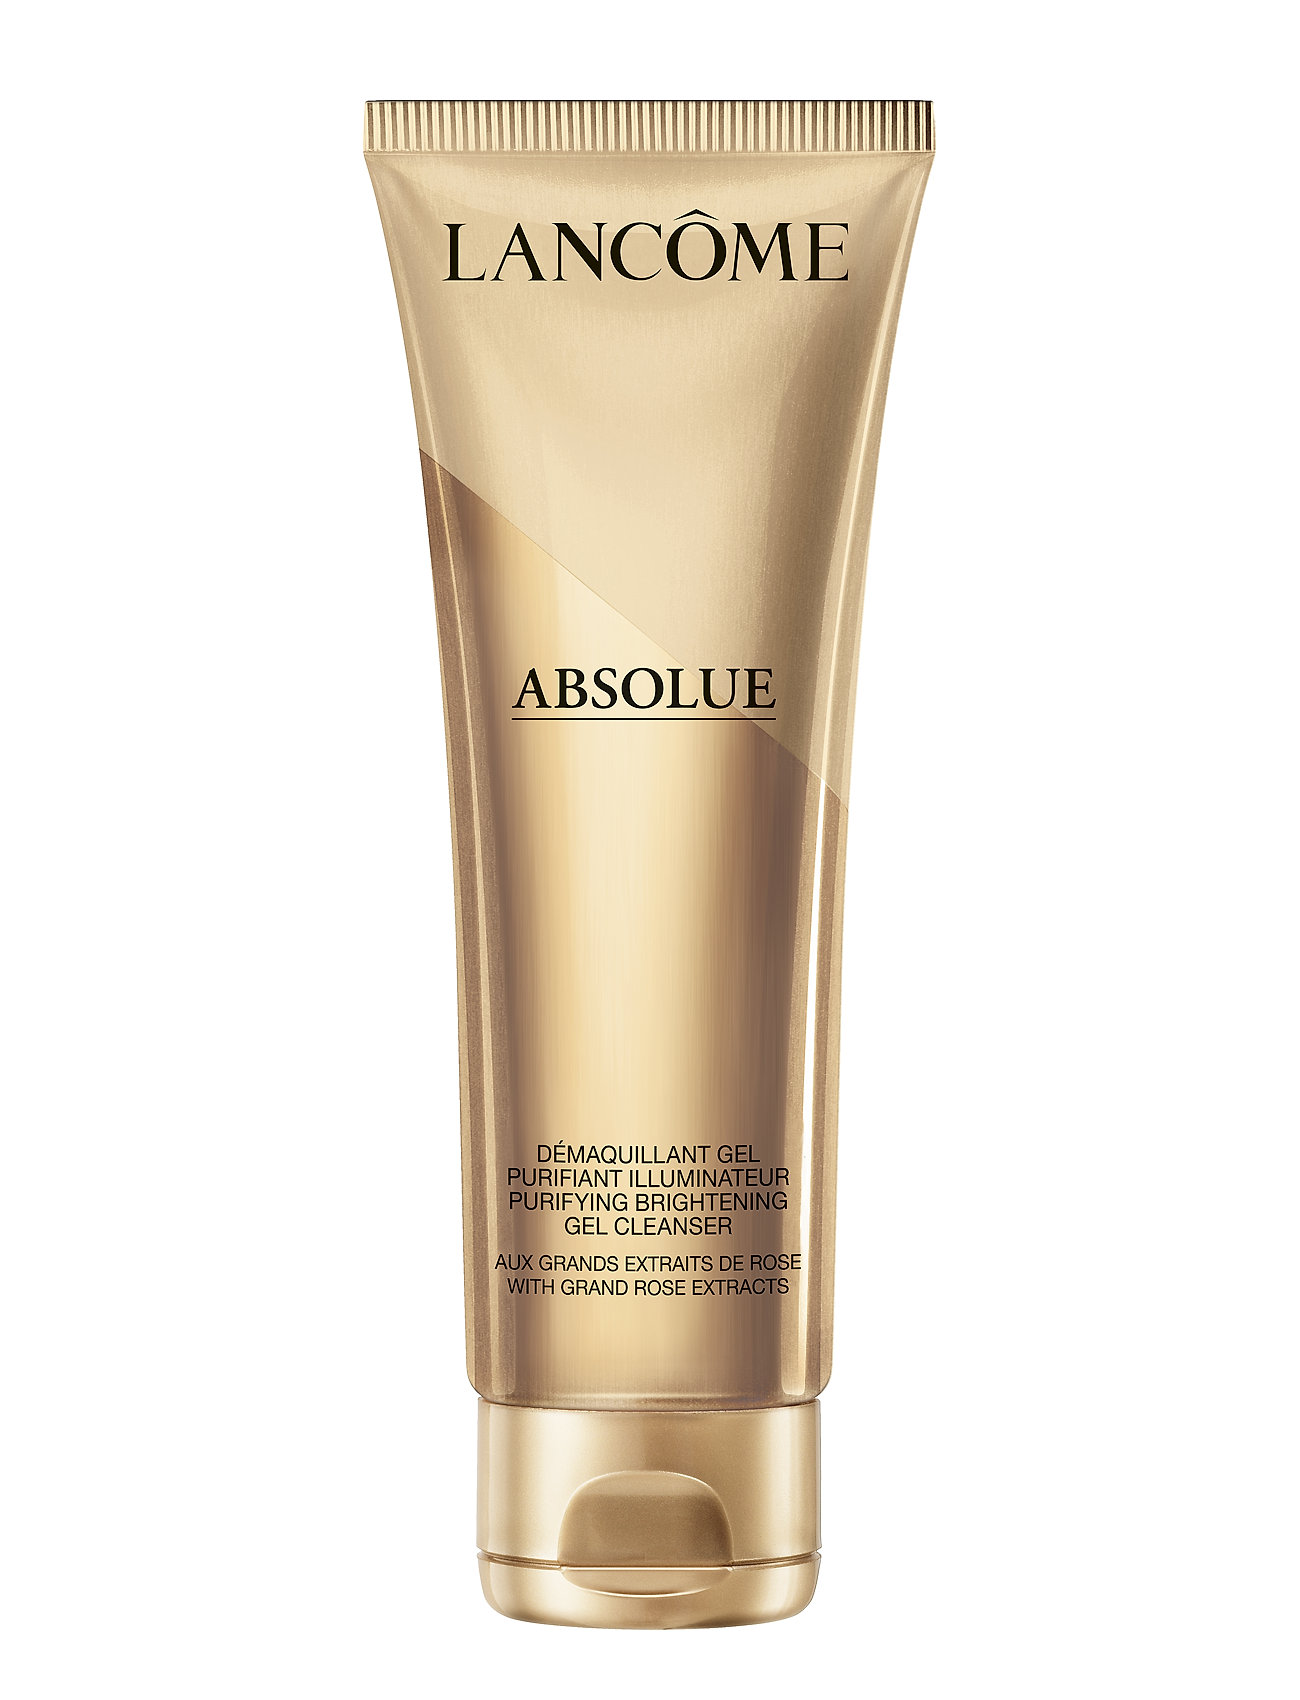 Image of Absolue Precious Cells Cleansing Gel Cleanser 125 Ml Beauty WOMEN Skin Care Face Cleansers Cleansing Gel Nude Lancôme (3100670423)